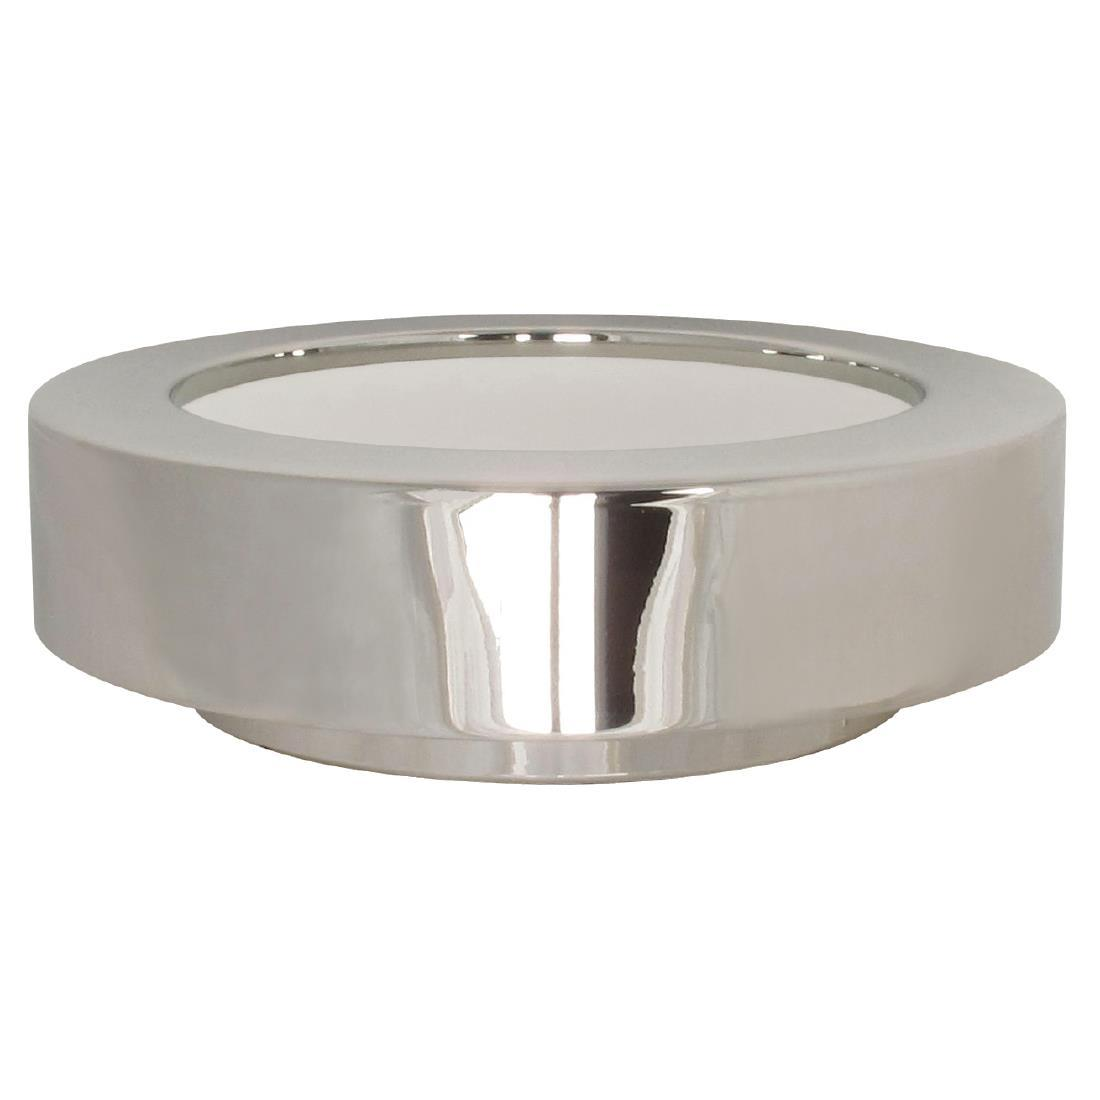 GC928 - APS Frames Stainless Steel Small Round Buffet Bowl Box - Each - GC928